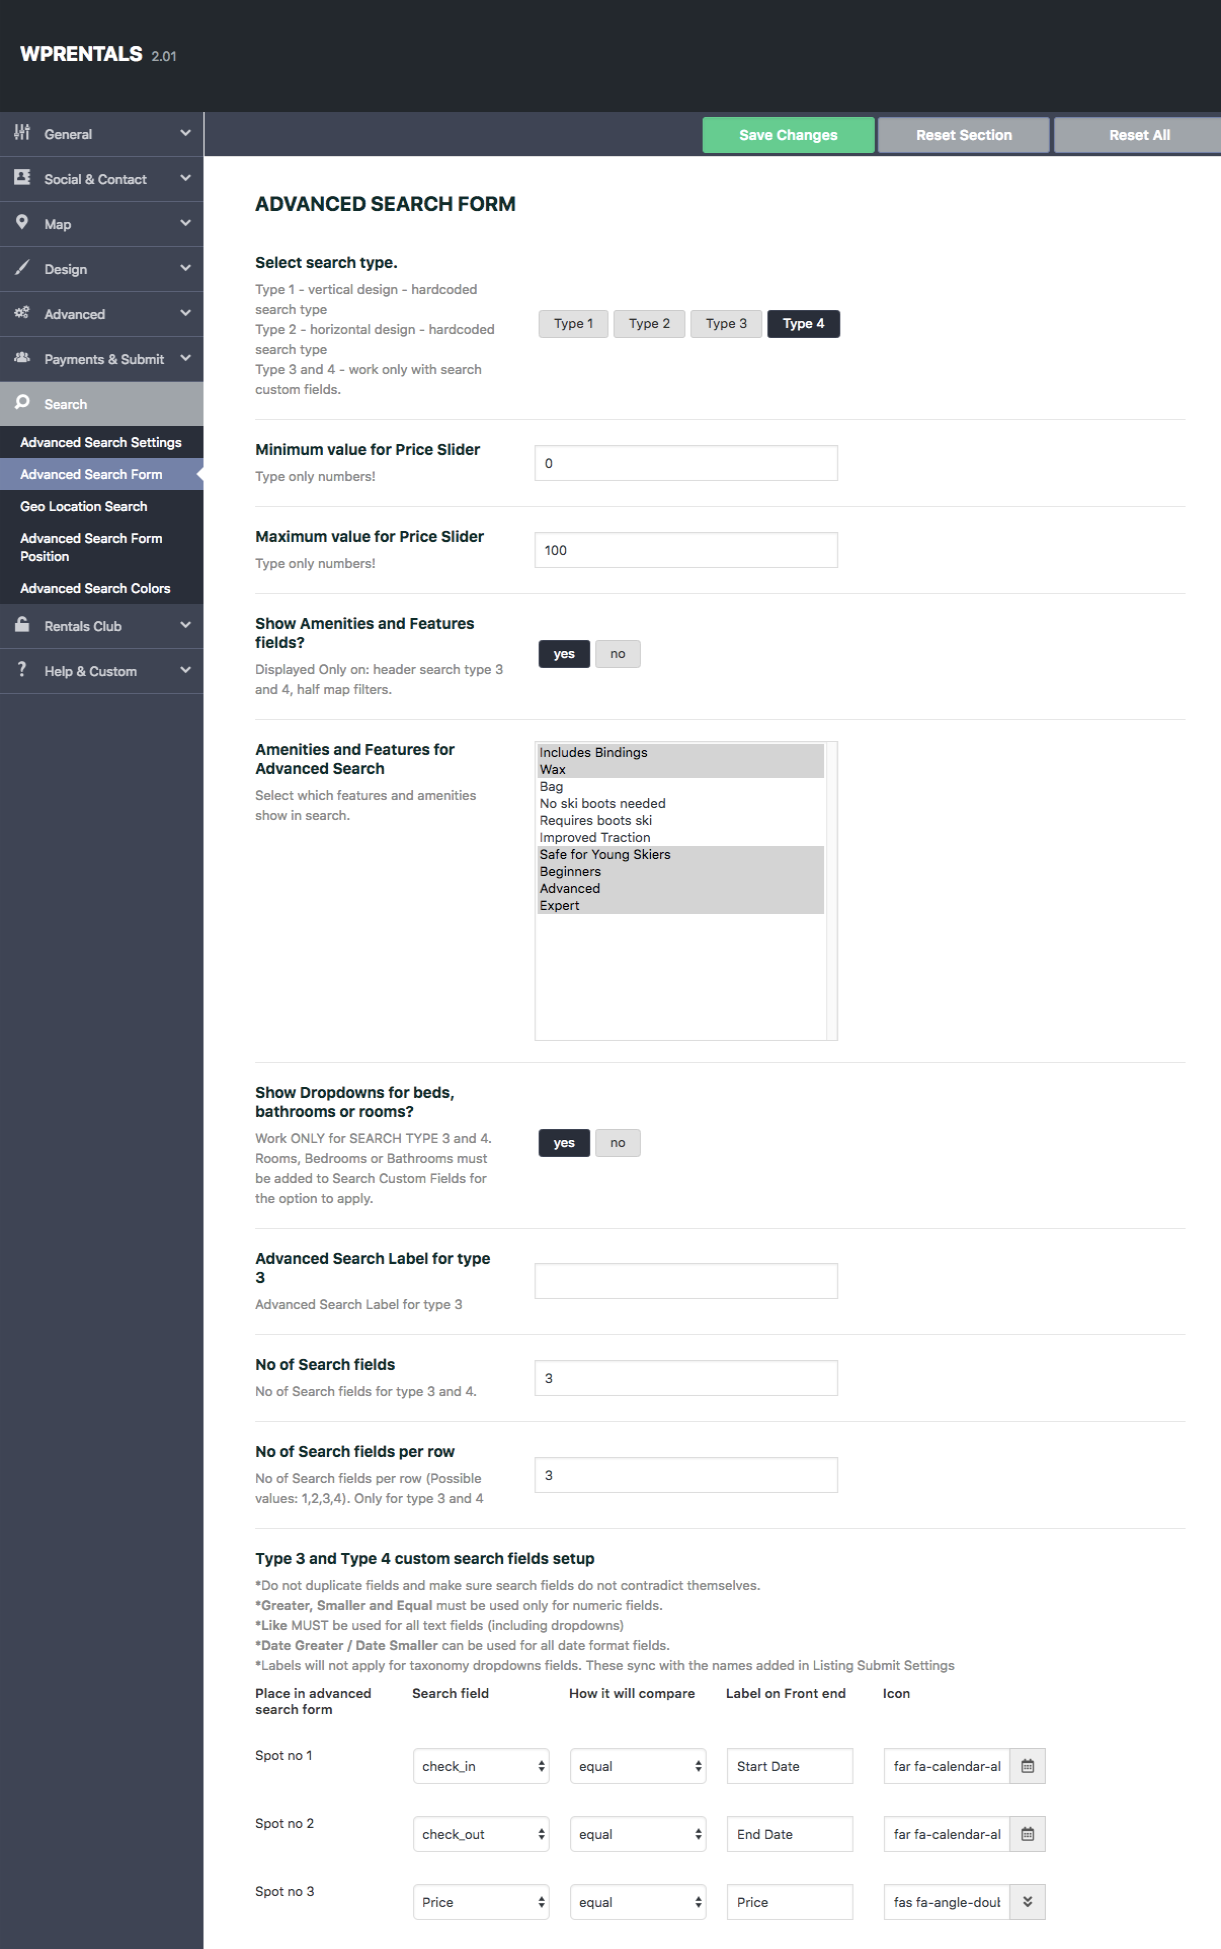 Wp Rentals Custom Fields for Advanced Search Form